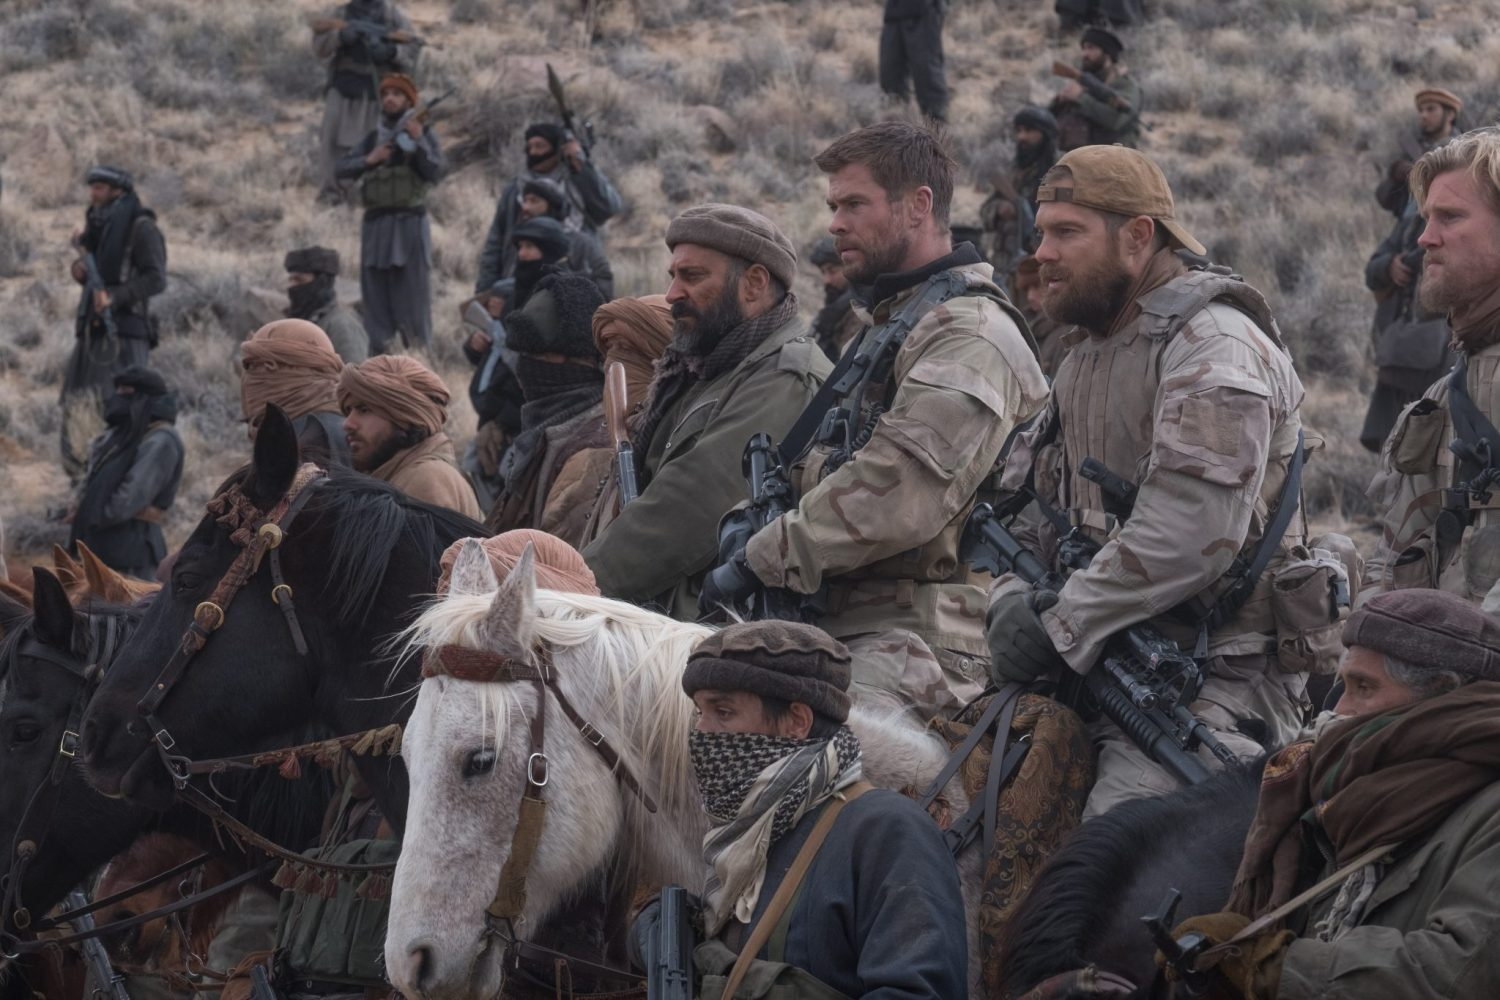 12 Strong Operation 12 Strong Chris Hemsworth Soldaten Kriegsfilm Review Kritik Blu-ray Heimkino Titel Pferde